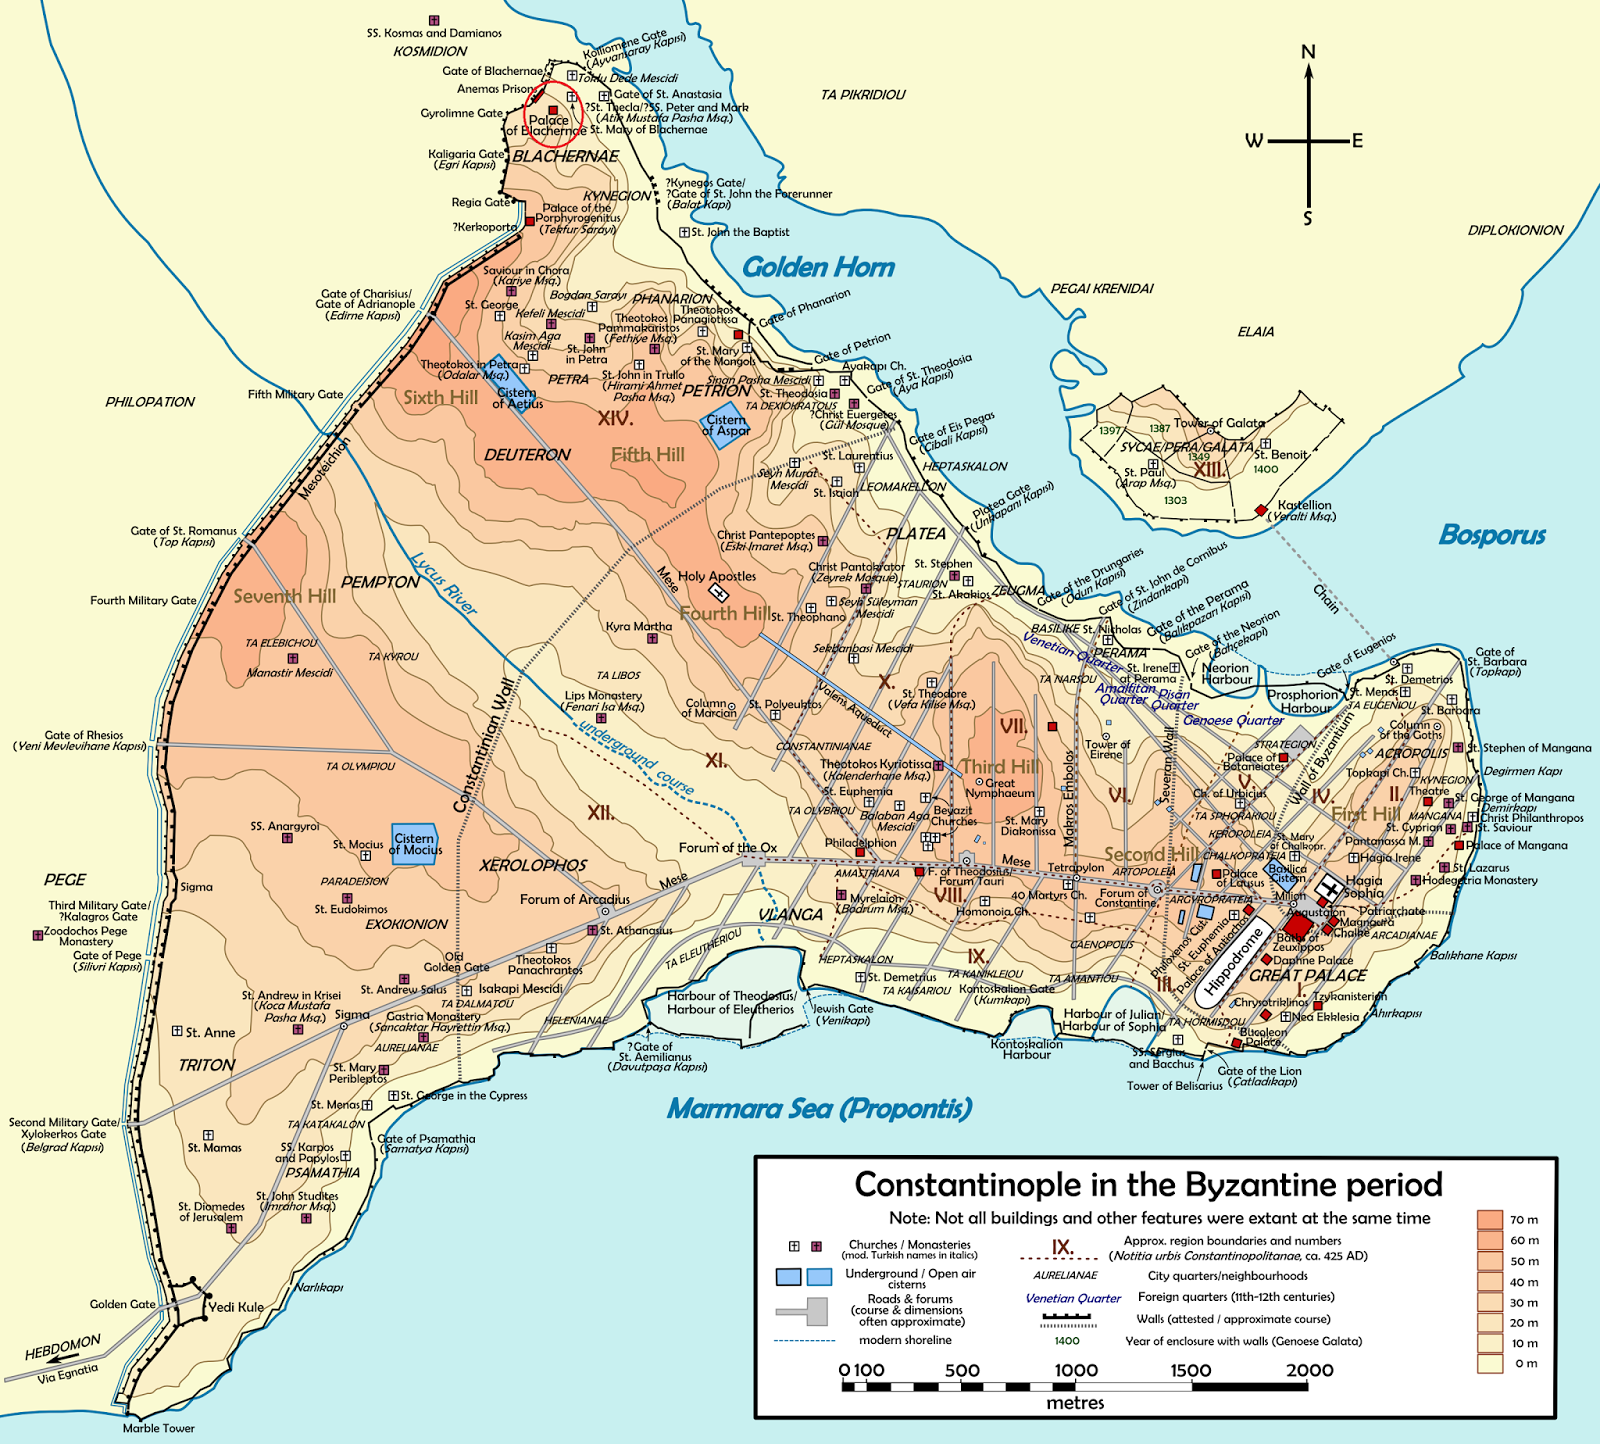 Map of Constantinople in Byzantine Period